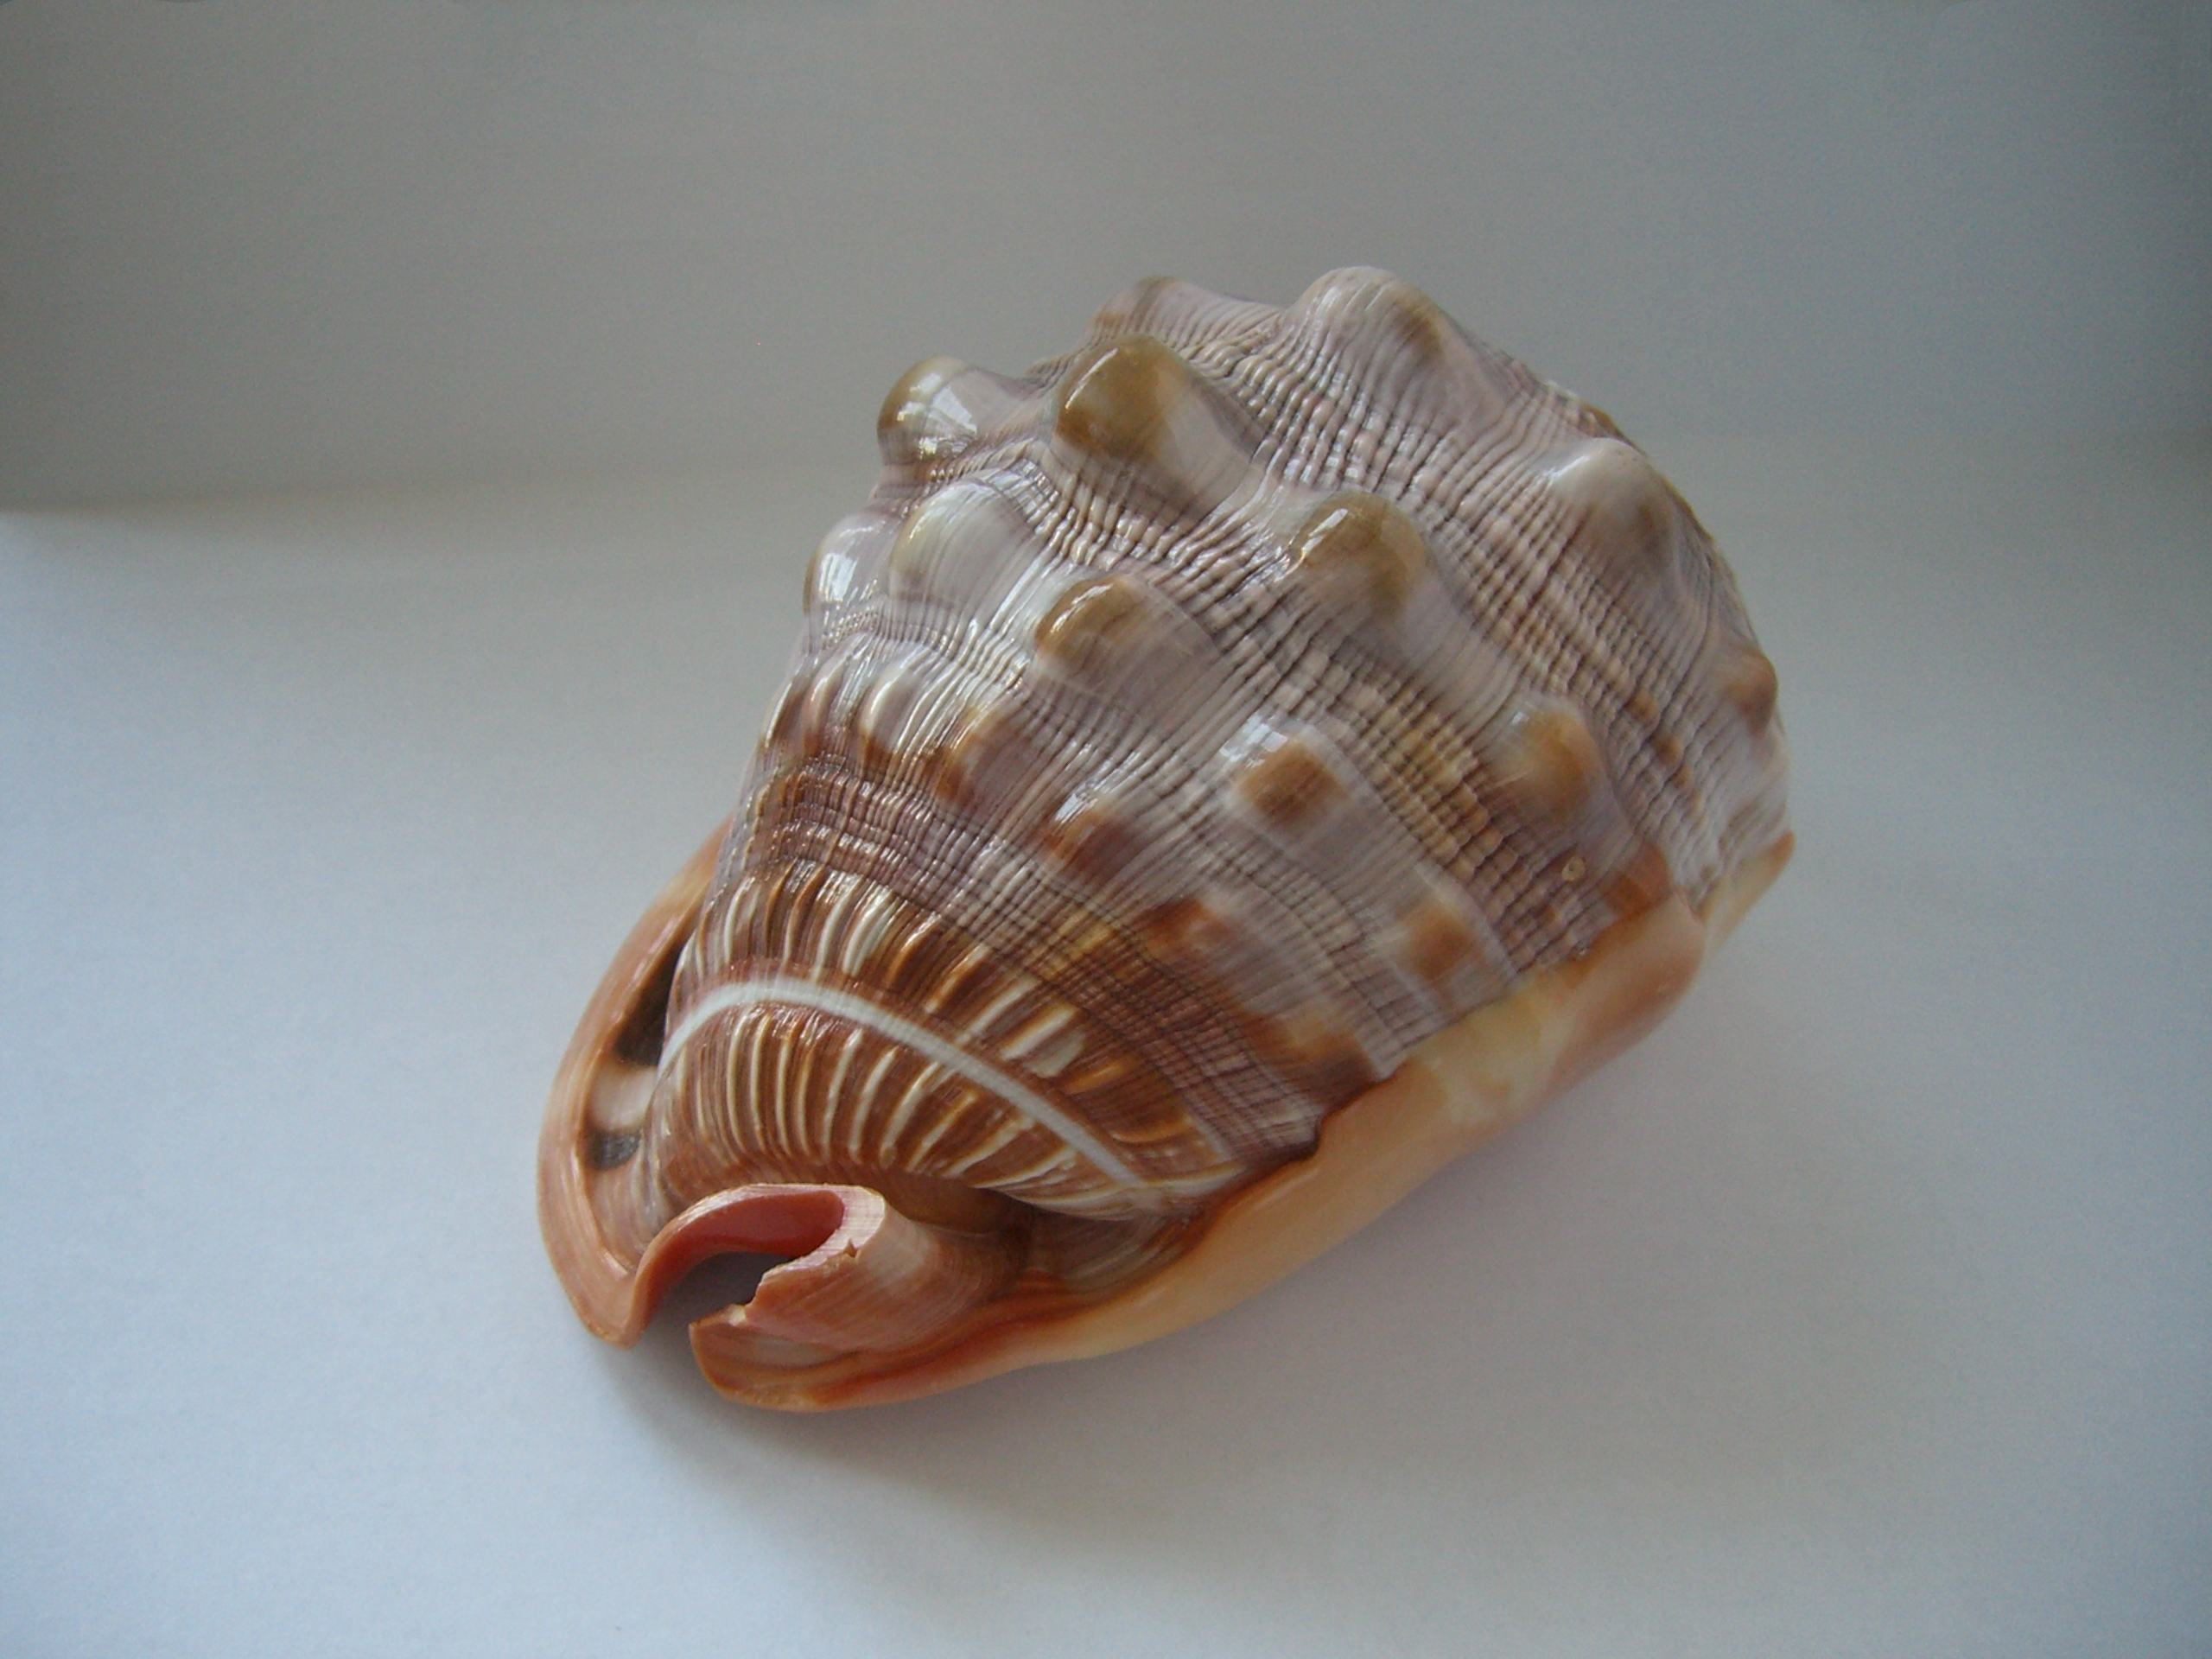 Http Commons Wikimedia Org Wiki File Seashell Unknown Jpg